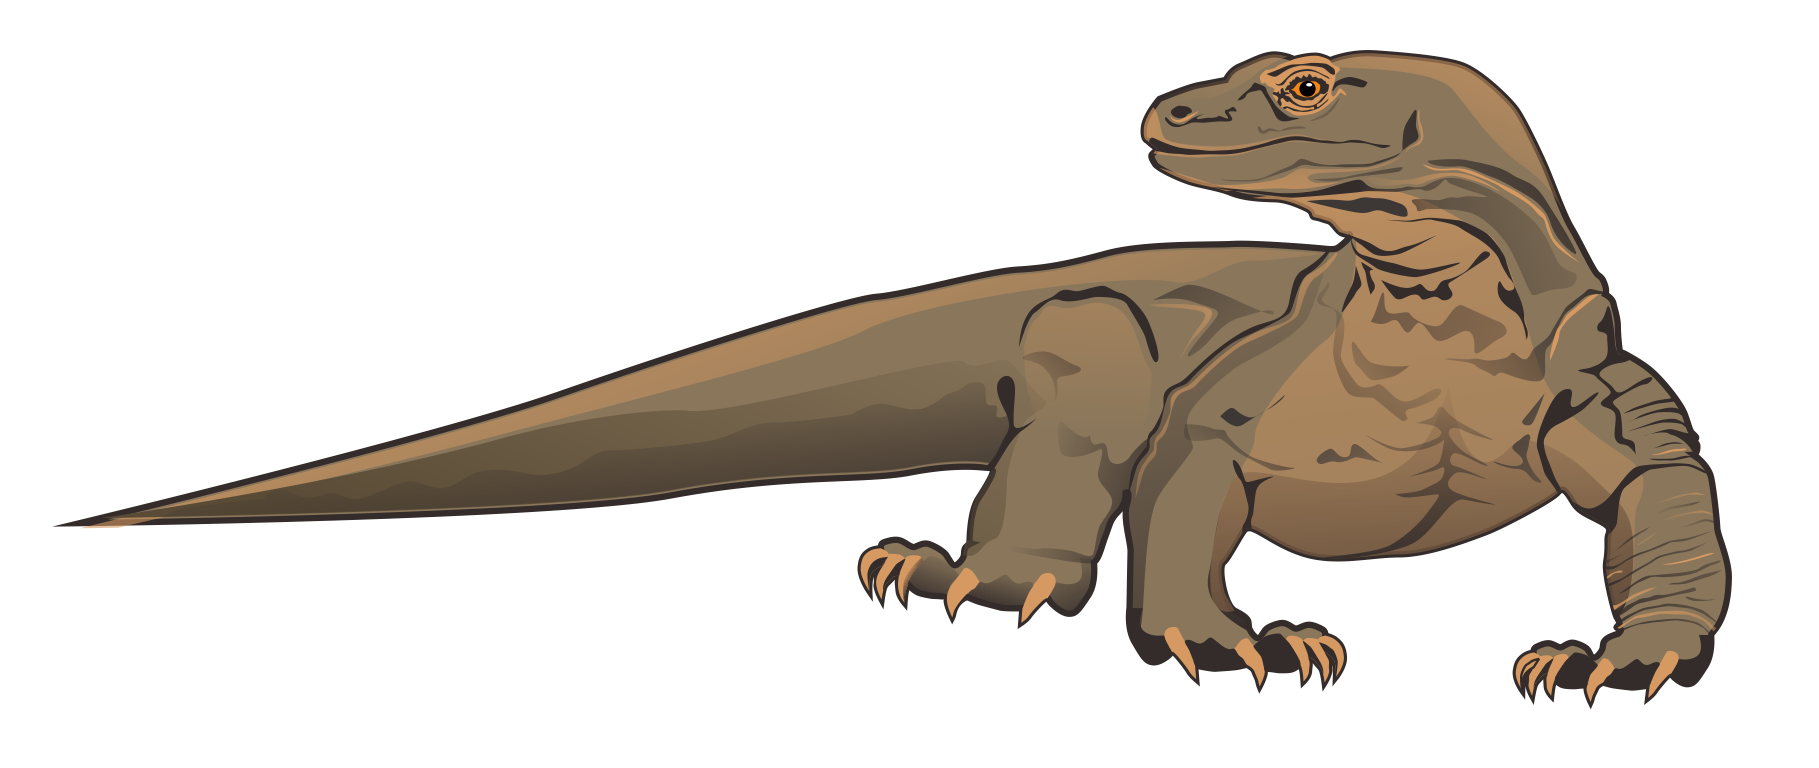 best komodo dragon clipart 16469 clipartion com